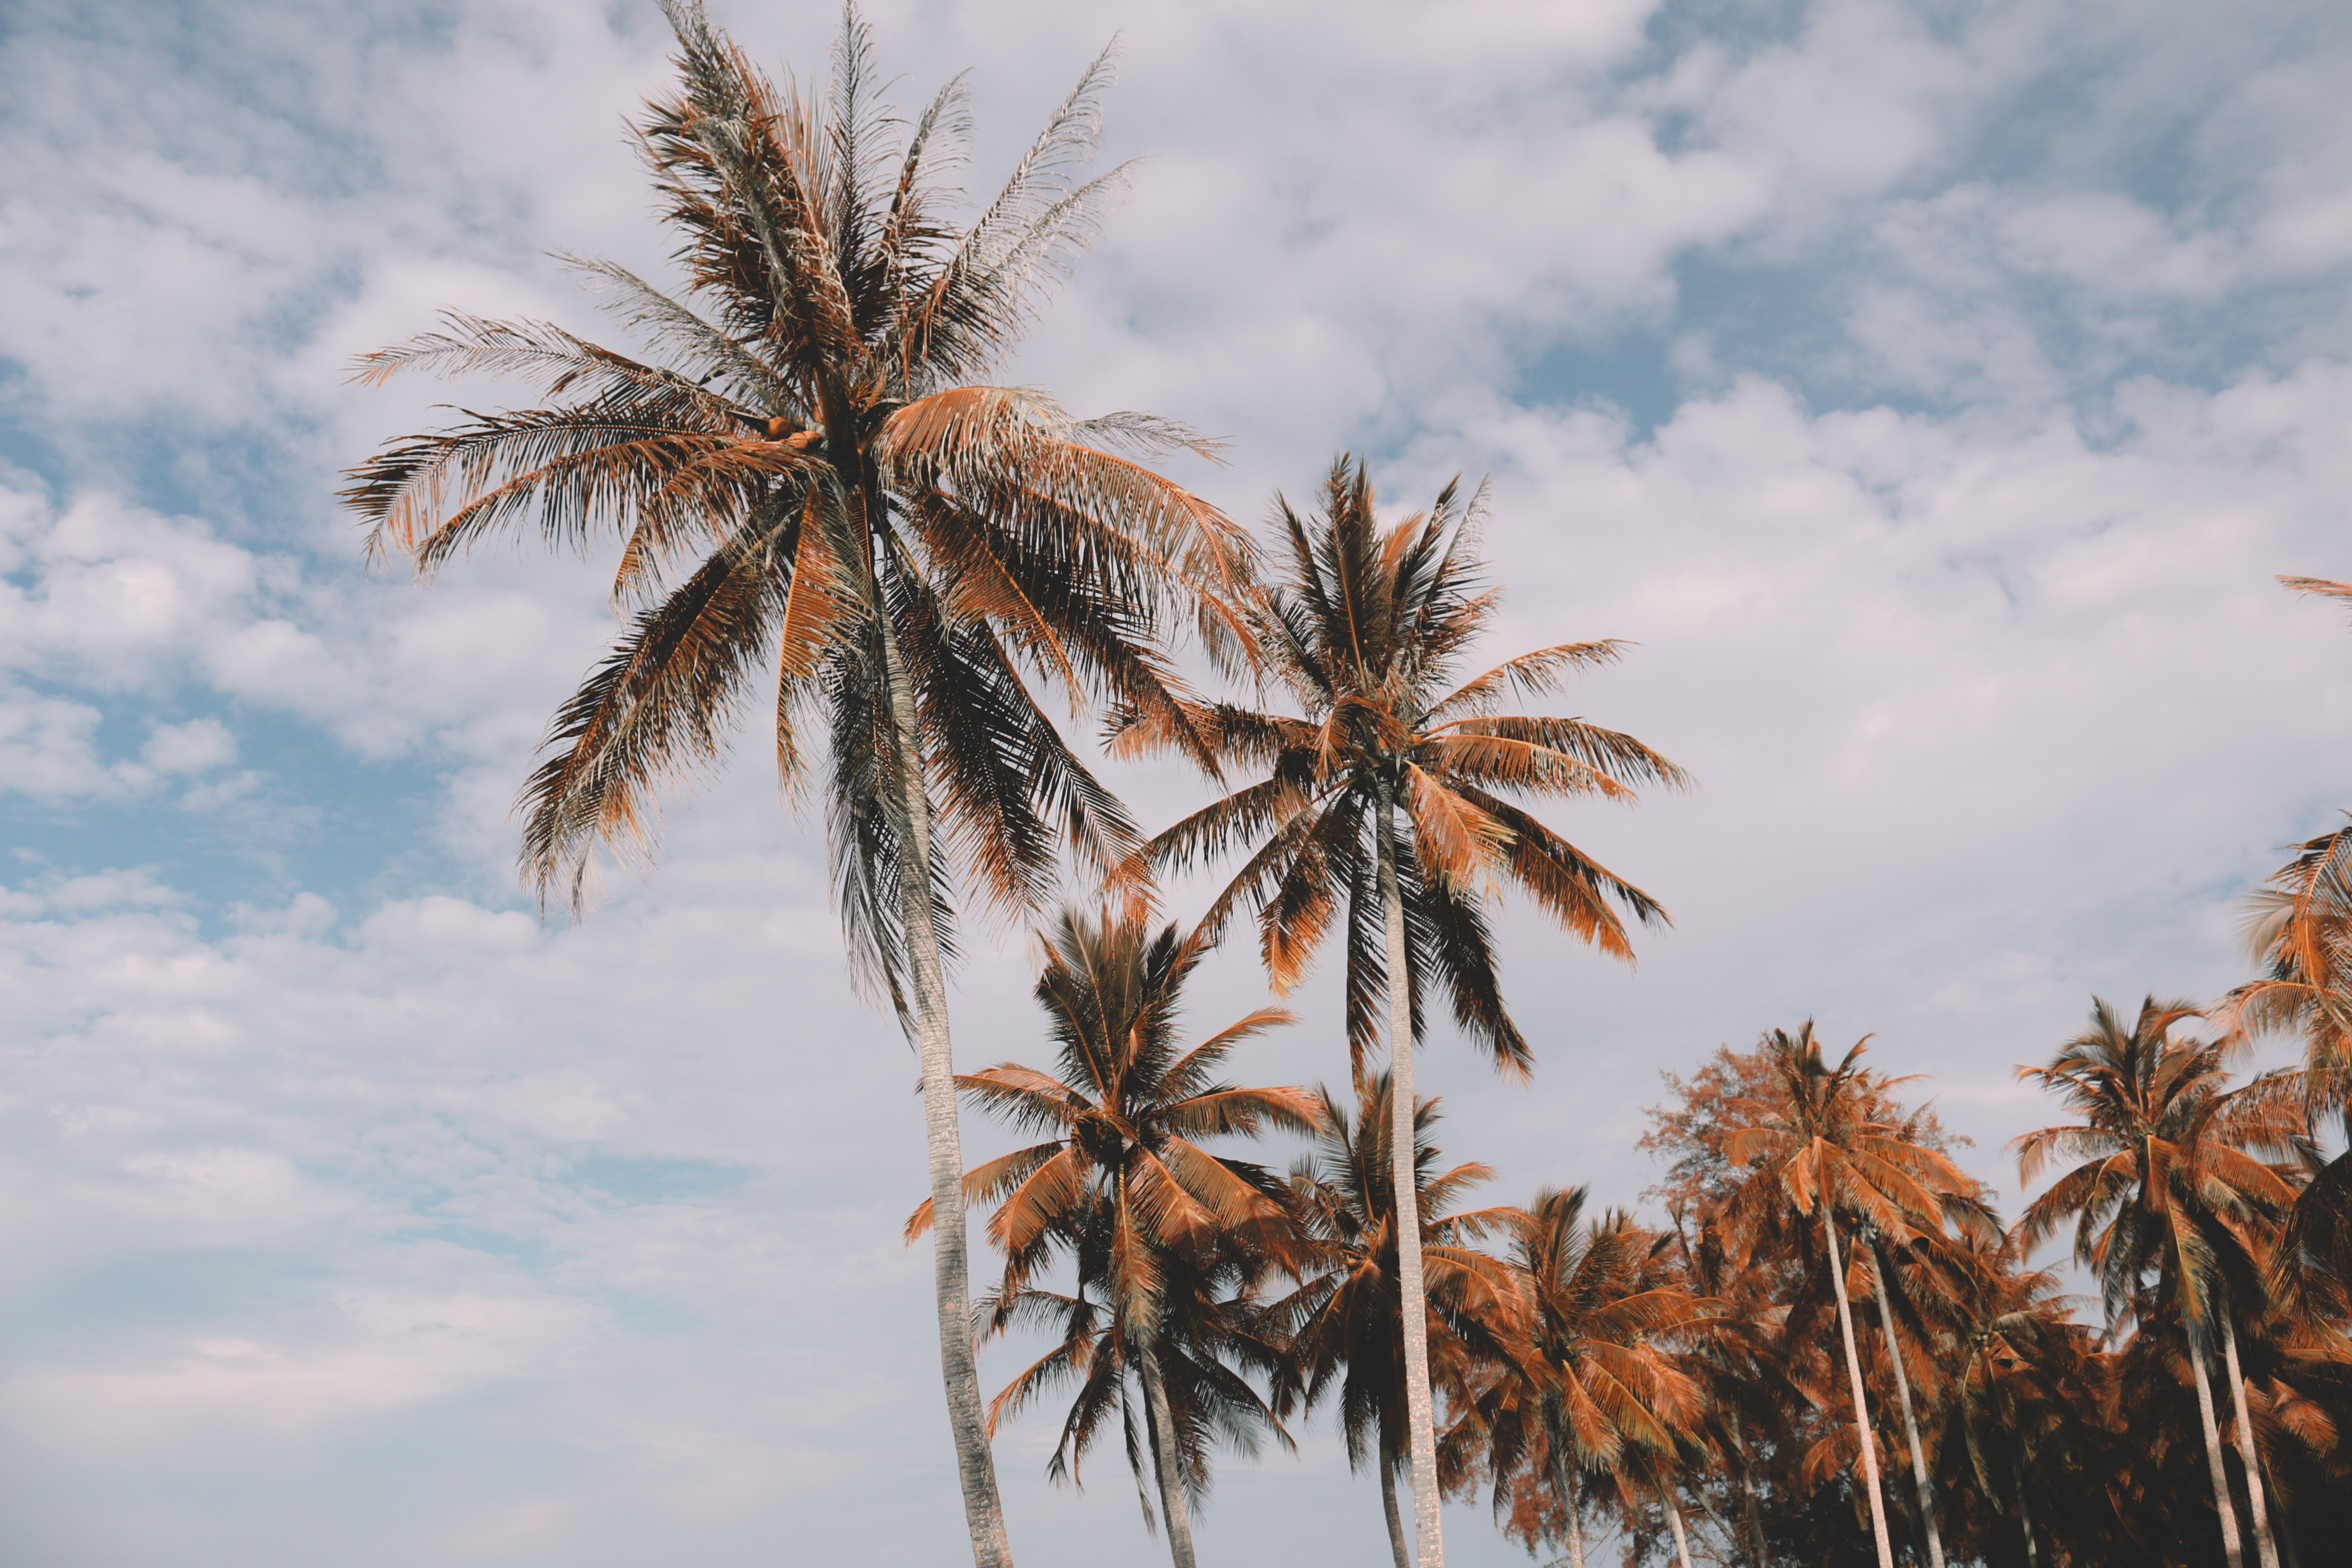 coconut palm tree at daytime